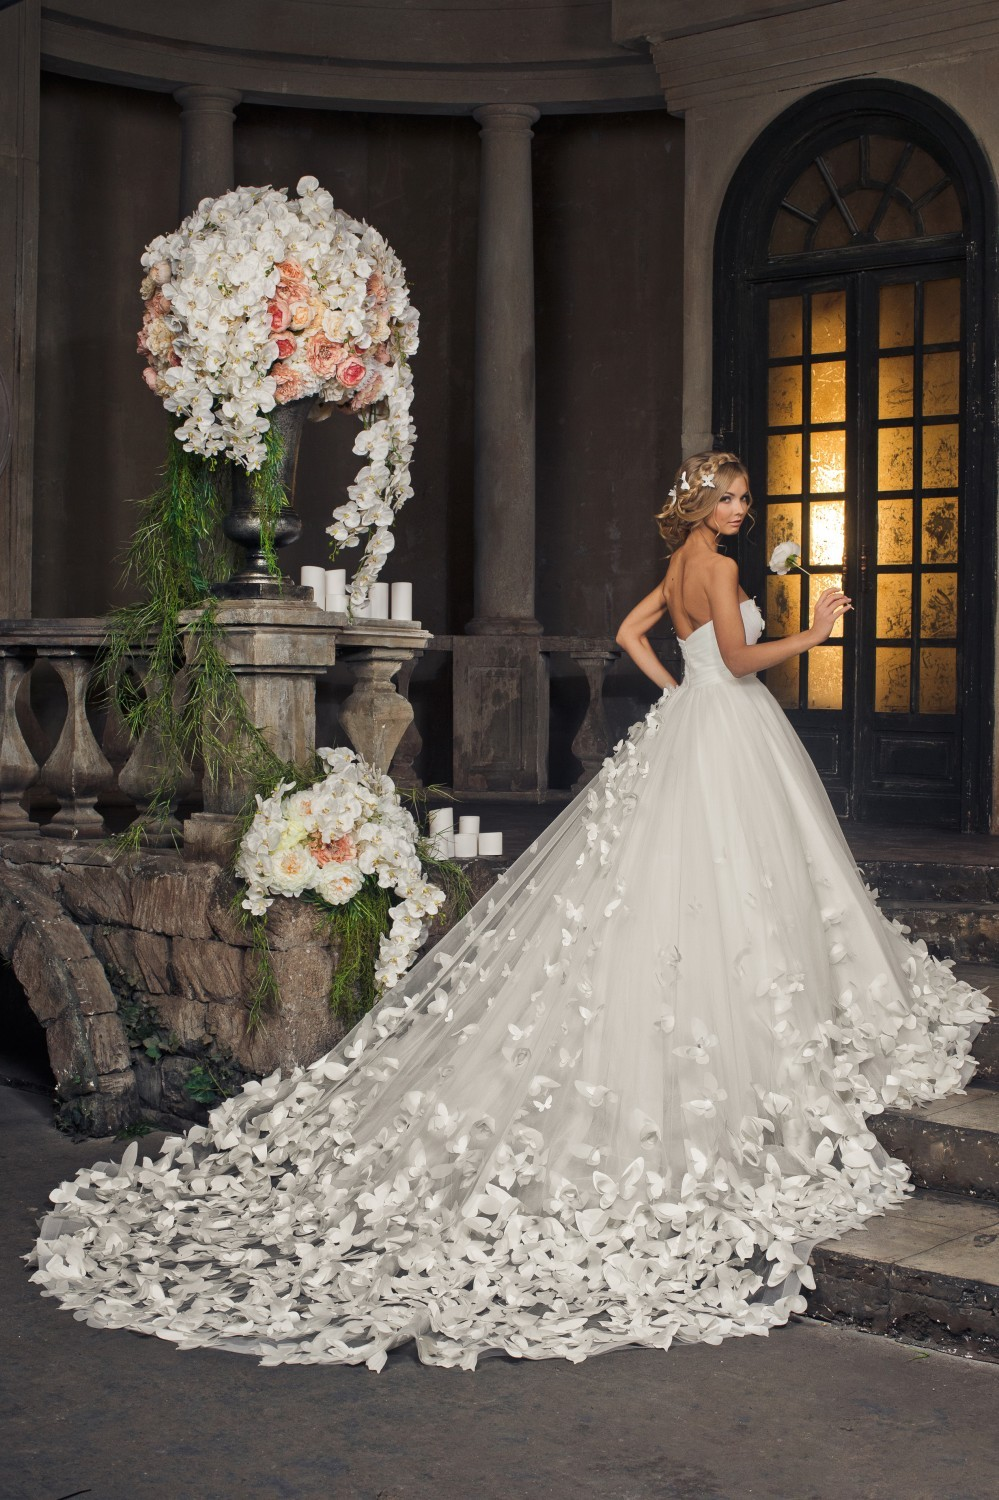 A wedding dress with gorgeous train